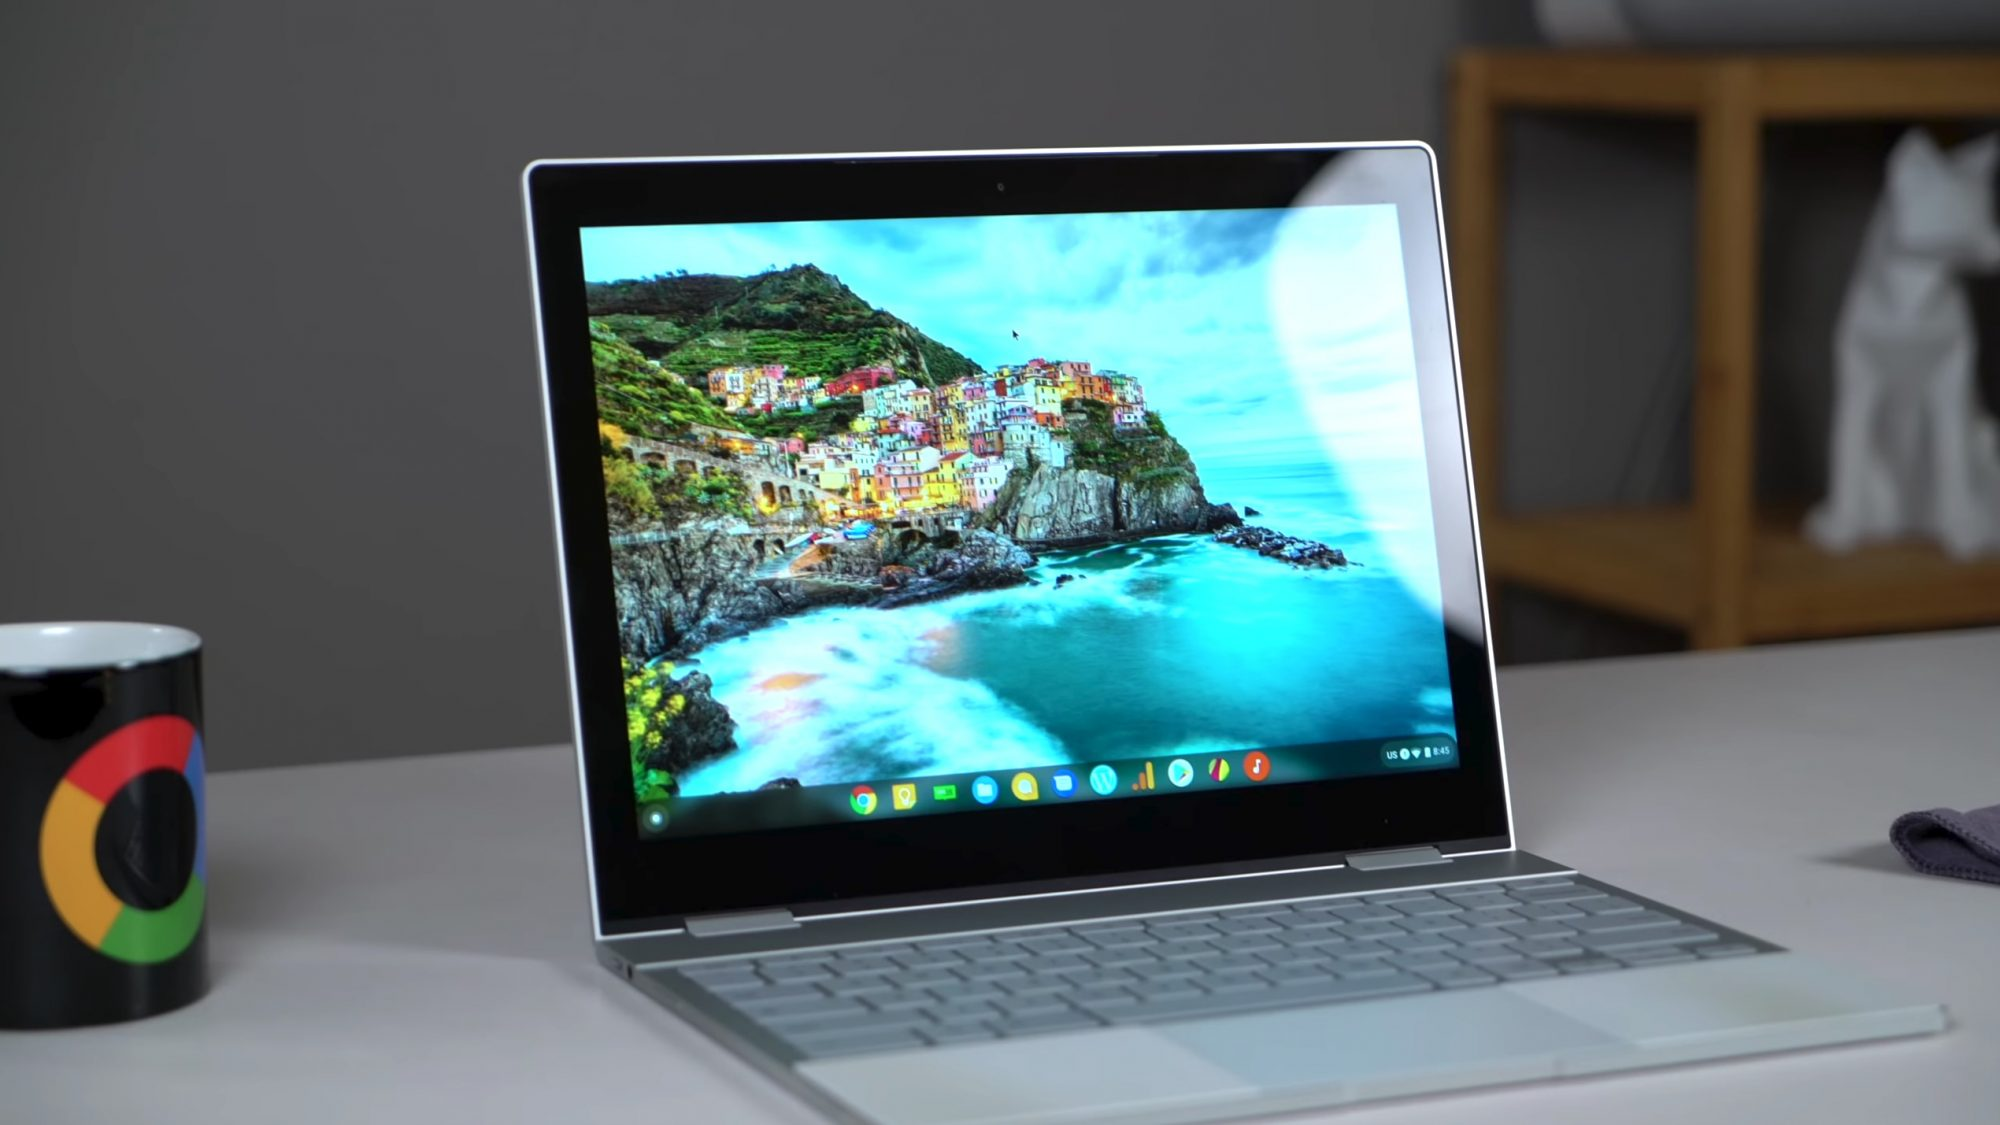 Get this Certified Refurbished Pixelbook for only $599 before they're gone